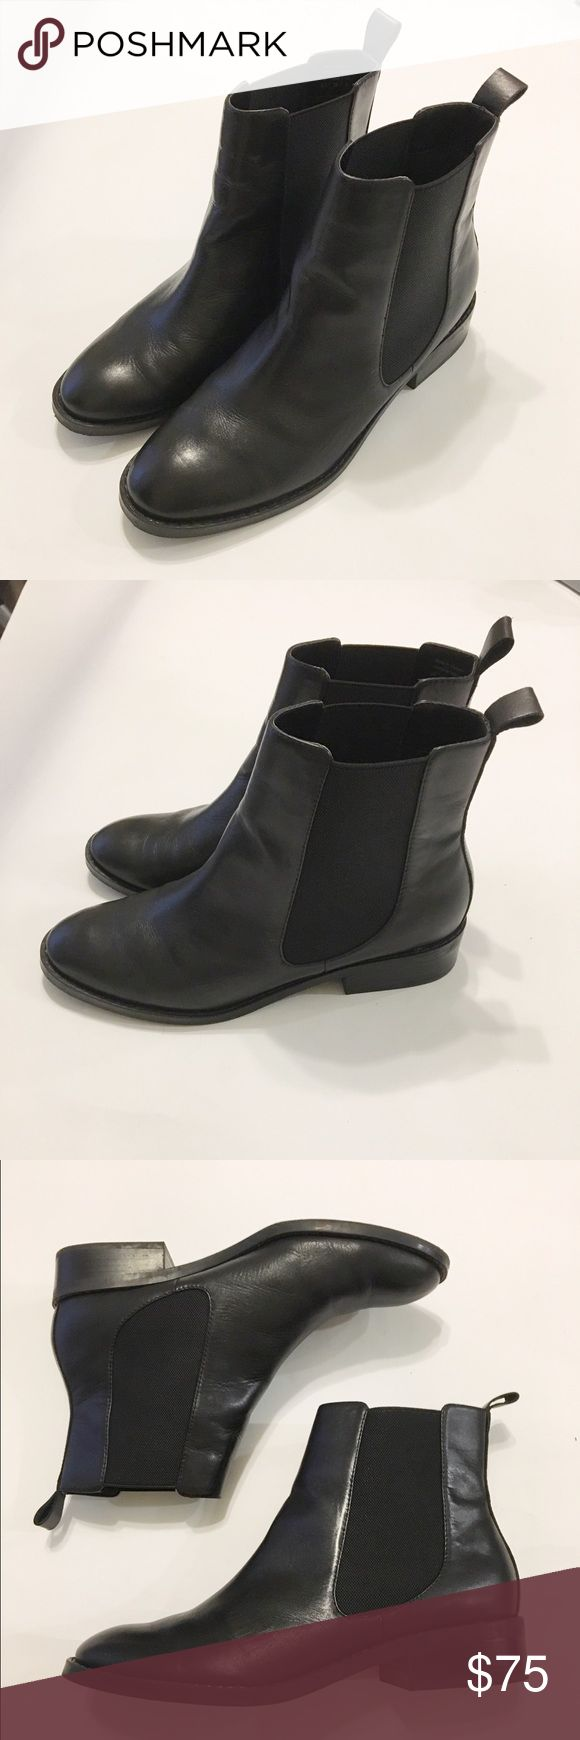 Aldo Boots These are like new Aldo ankle boots in excellent condition. These do run true to size. Aldo Shoes Ankle Boots & Booties